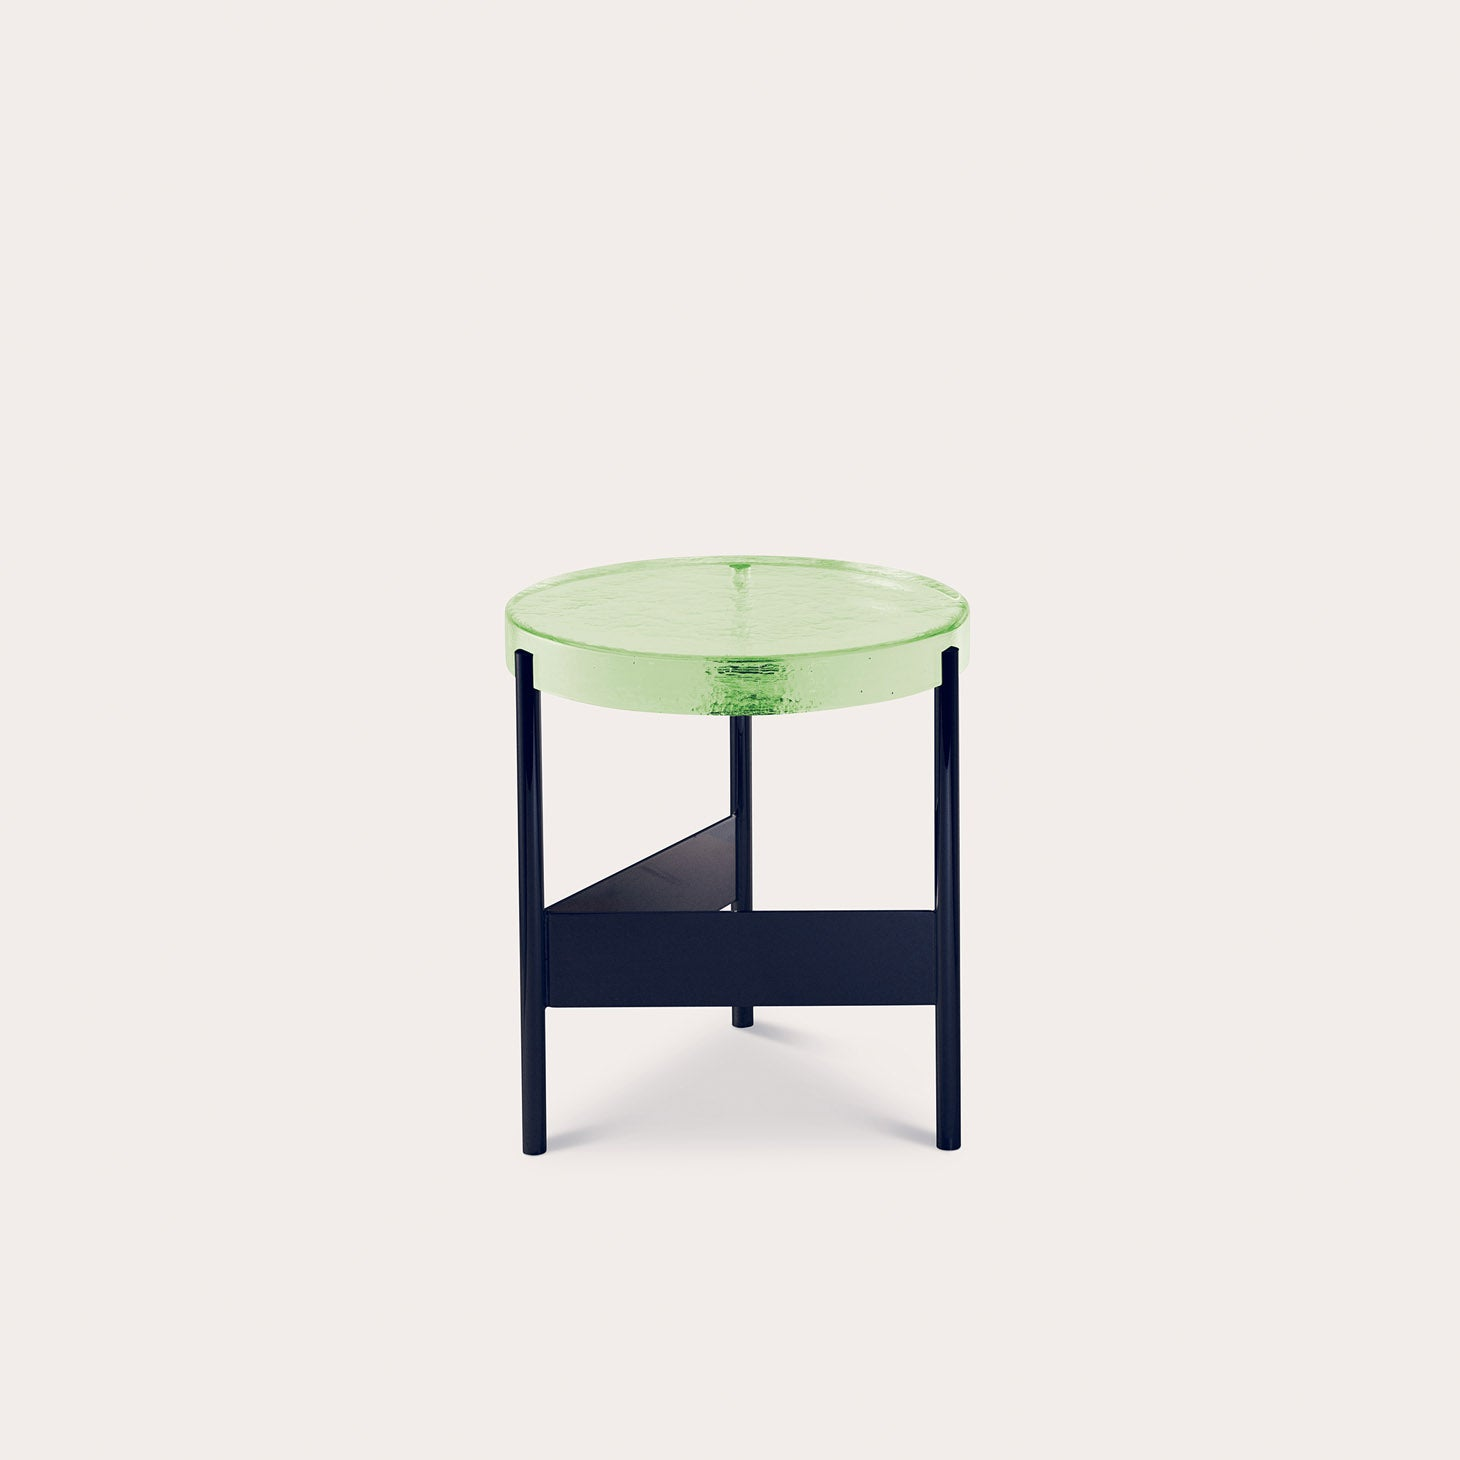 ALWA II Tables Sebastian Herkner Designer Furniture Sku: 747-230-10011